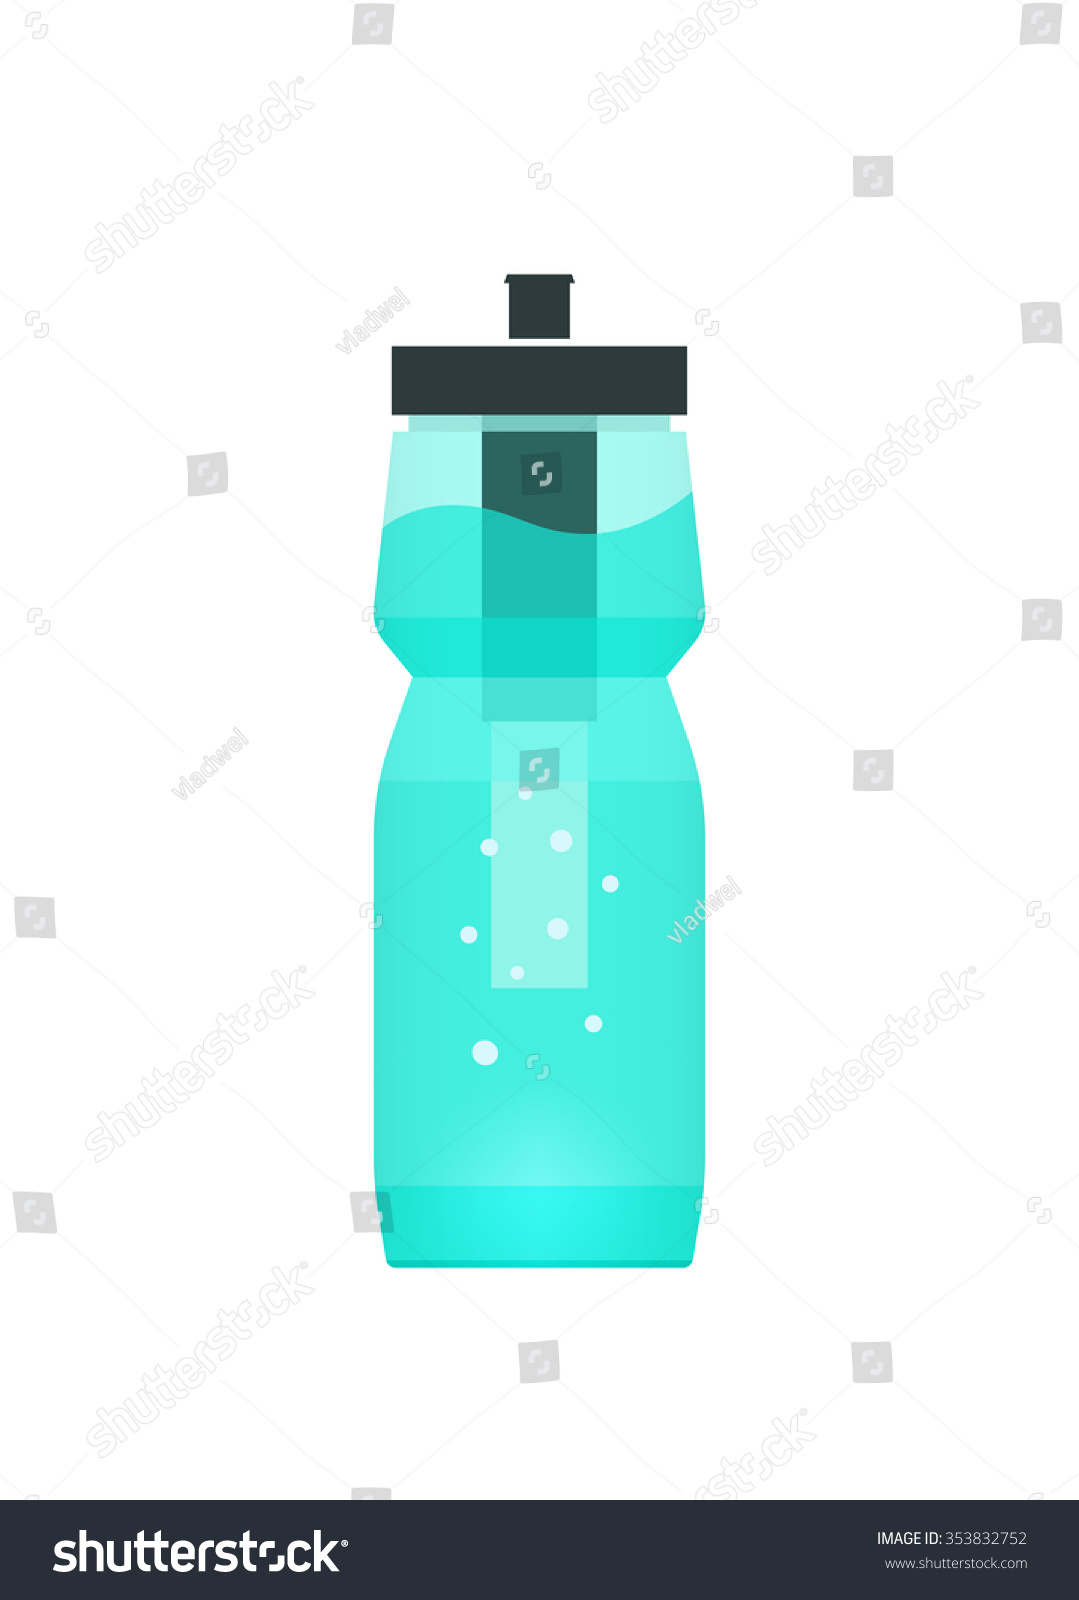 water filtration bottle for sport and travel concept of portable filtering technology